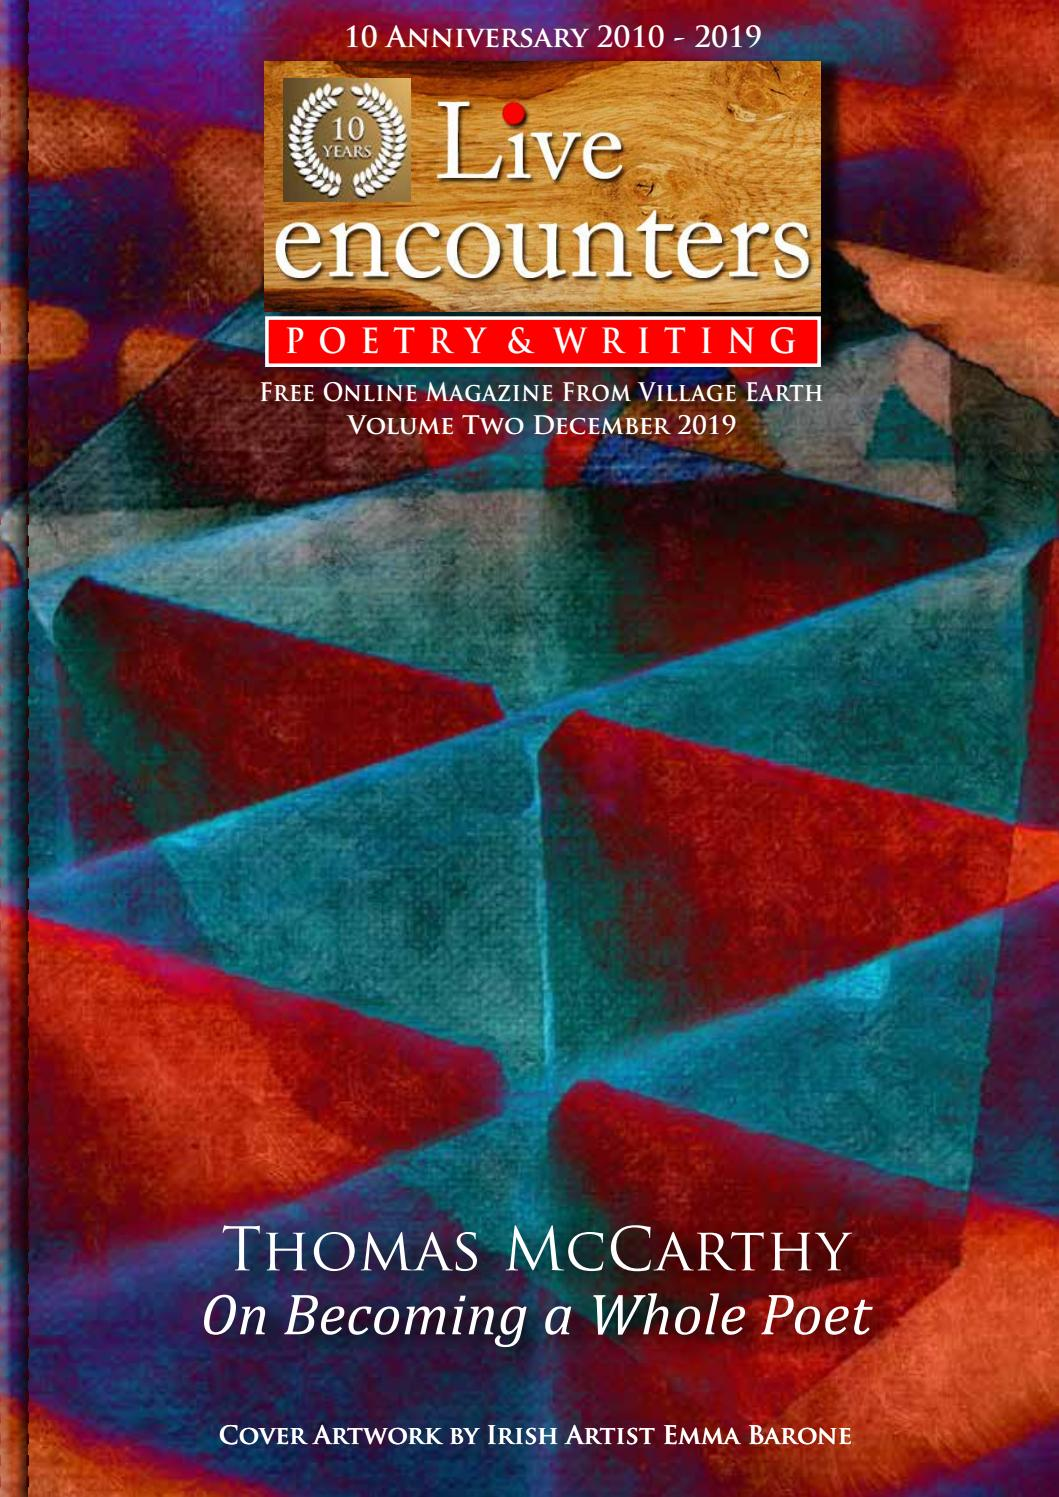 Live Encounters Poetry & Writing Volume Two December 2019 by